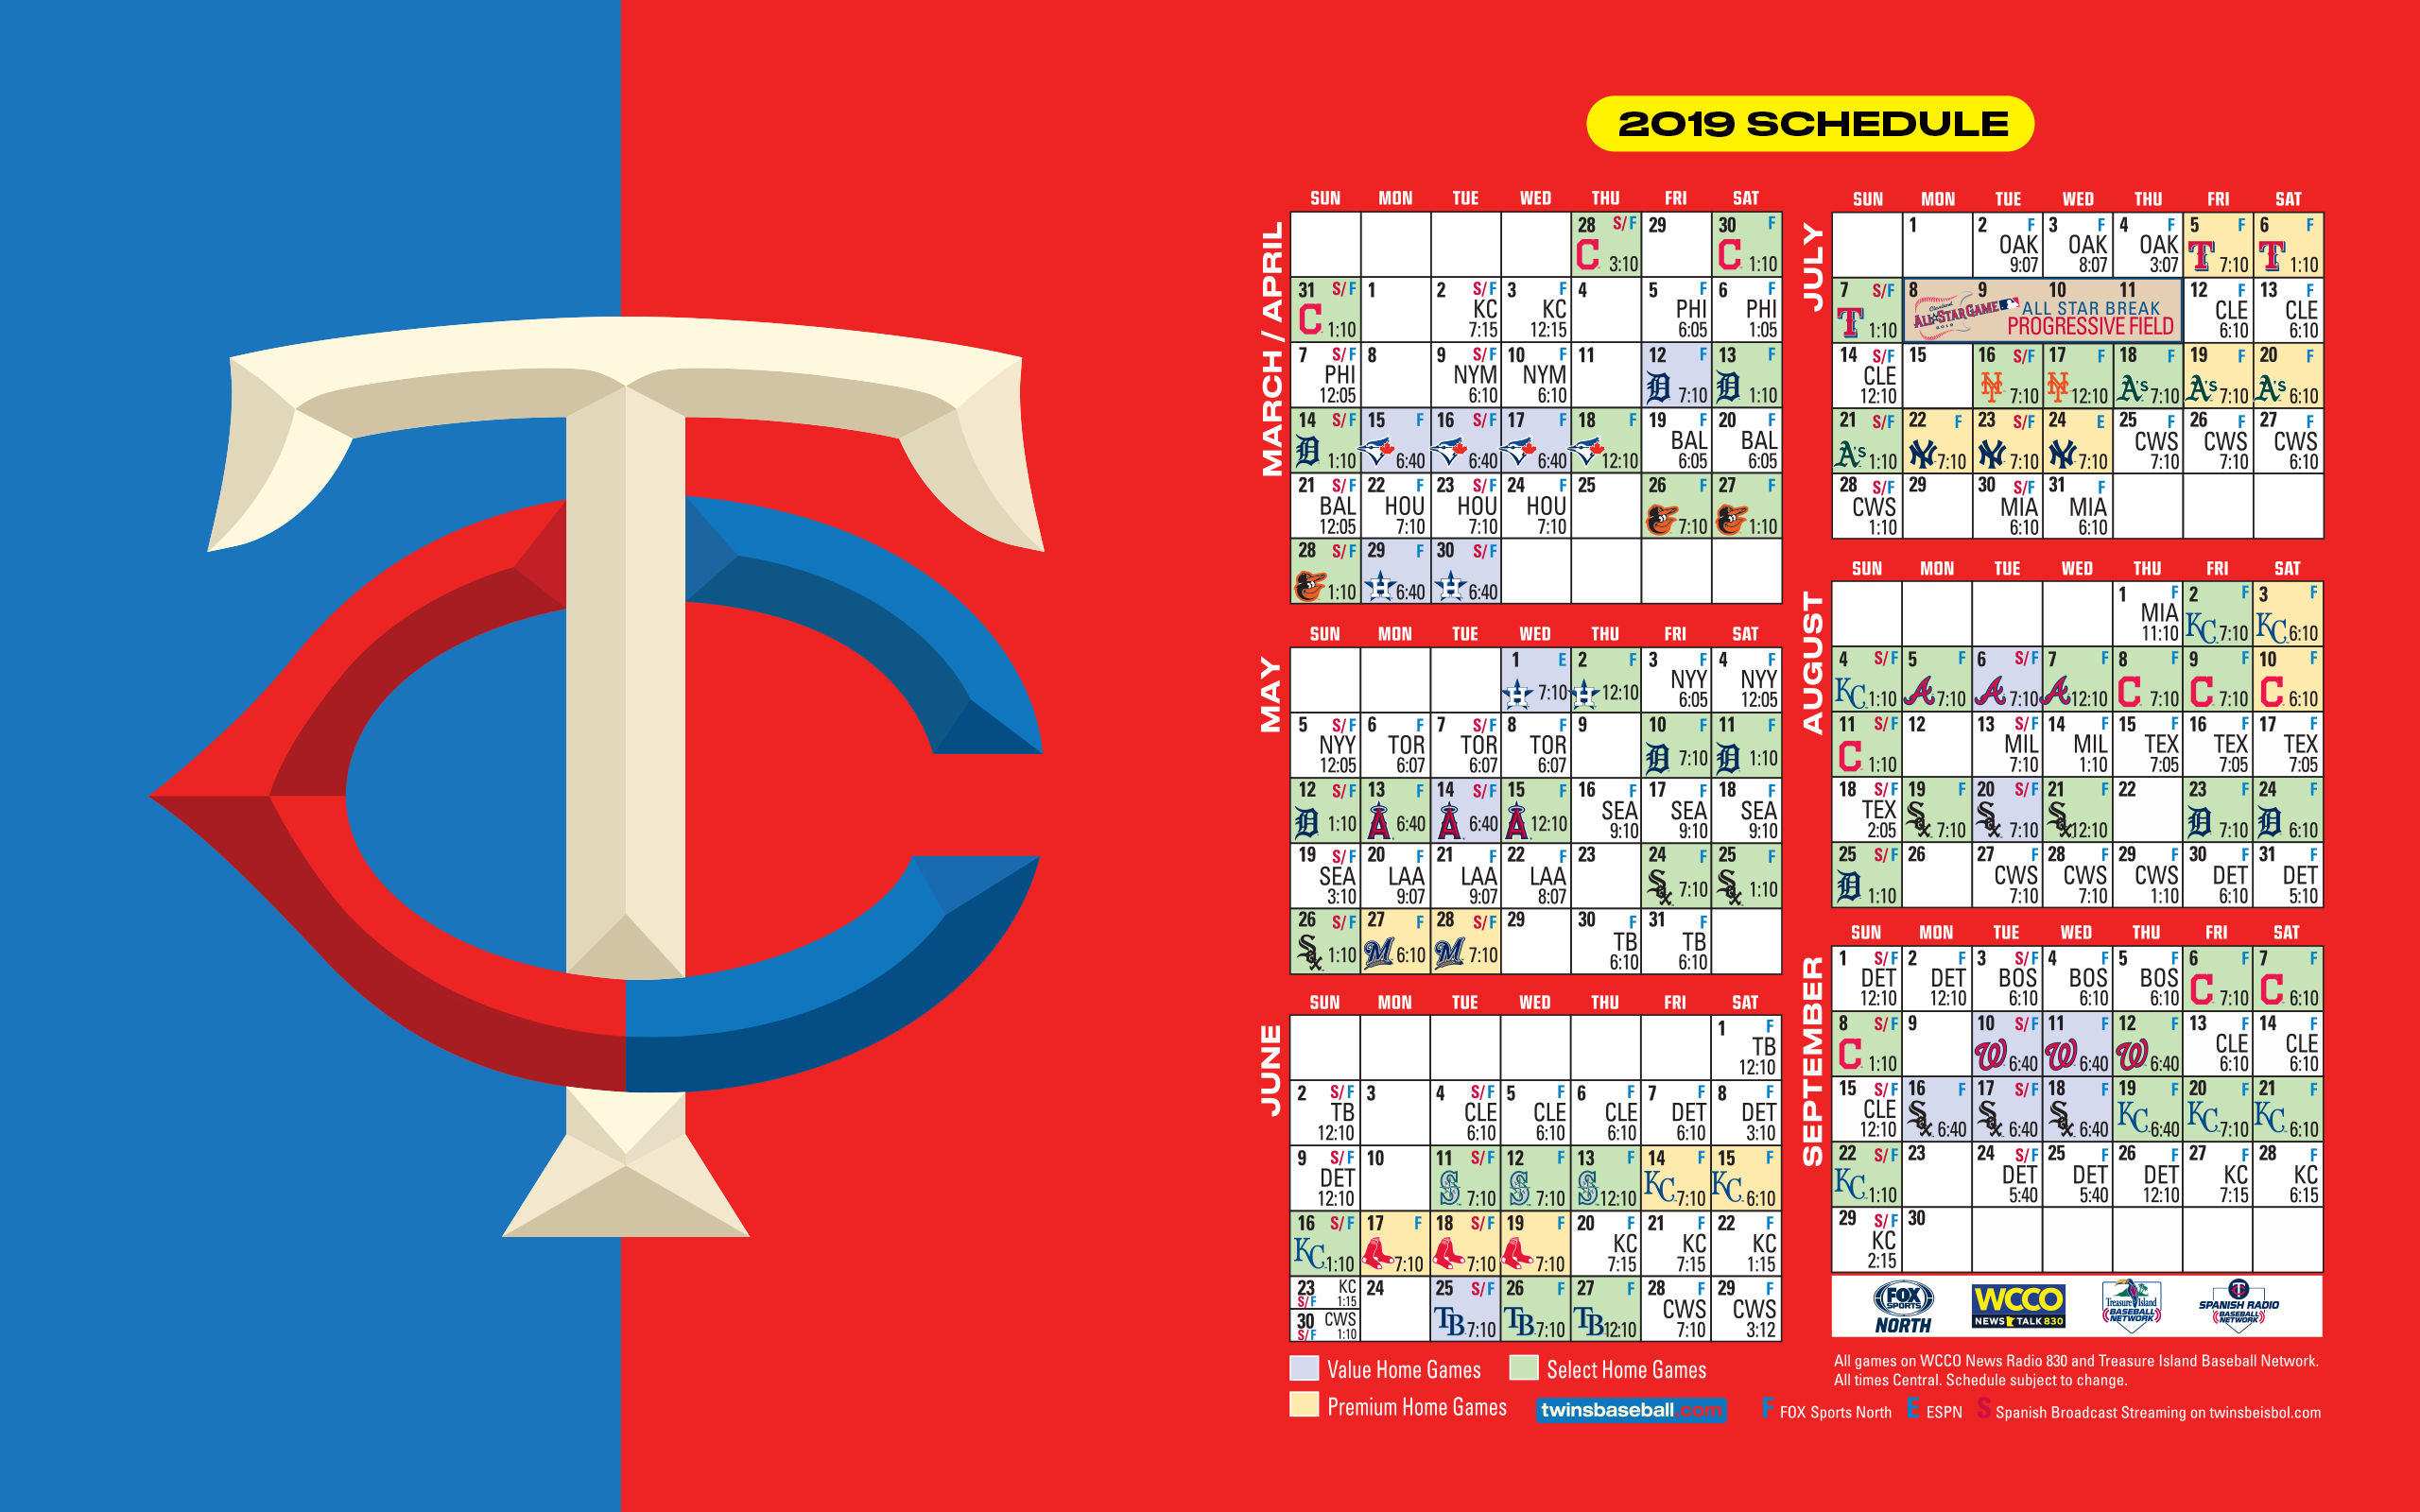 Refreshing image intended for minnesota twins printable schedule